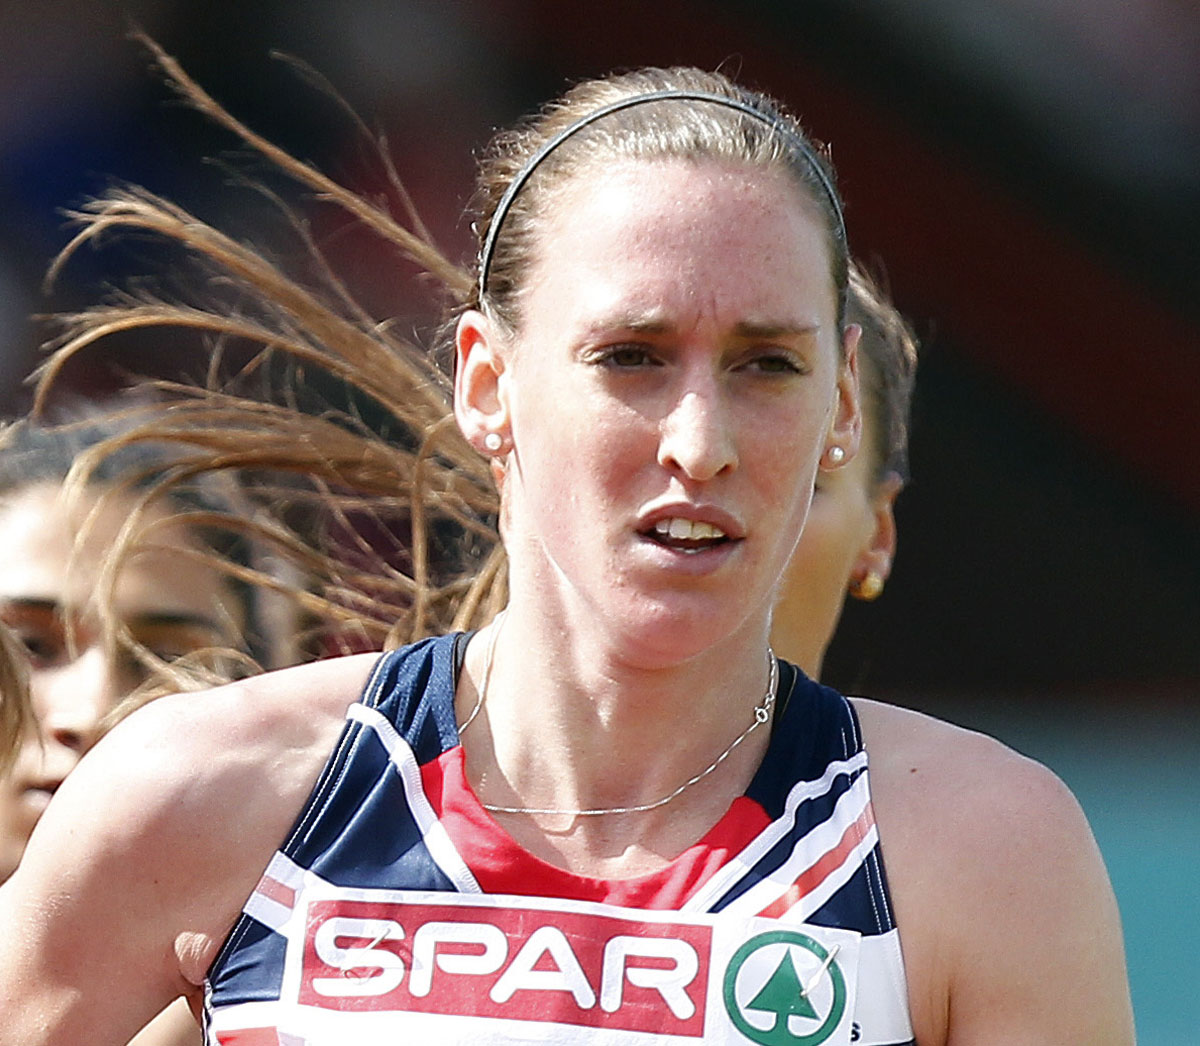 READY TO GO: North-Easterner Laura Weightman competes in the heats of the 1,500m at the Commonwealth Games this lunchtime